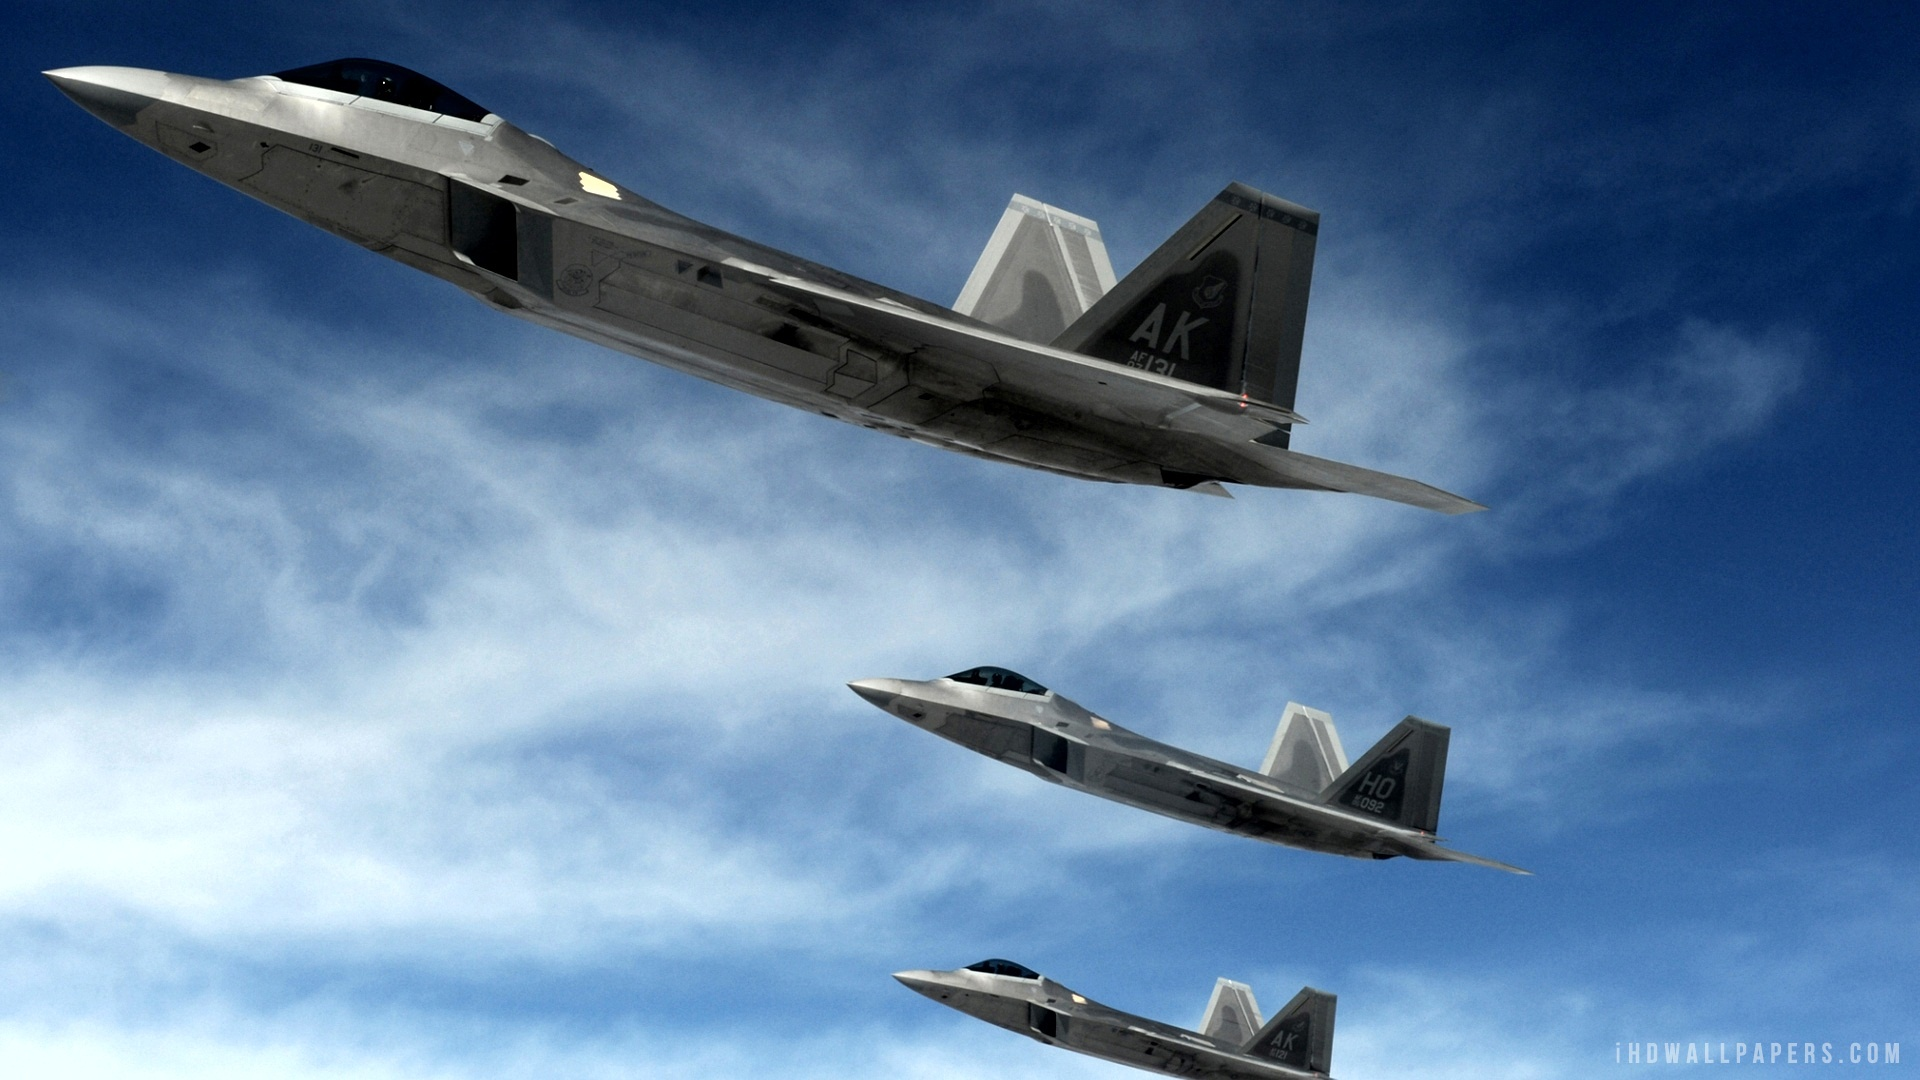 Download F 22 Raptor Supersonic Stealth Fighters WallpaperBackground 1920x1080